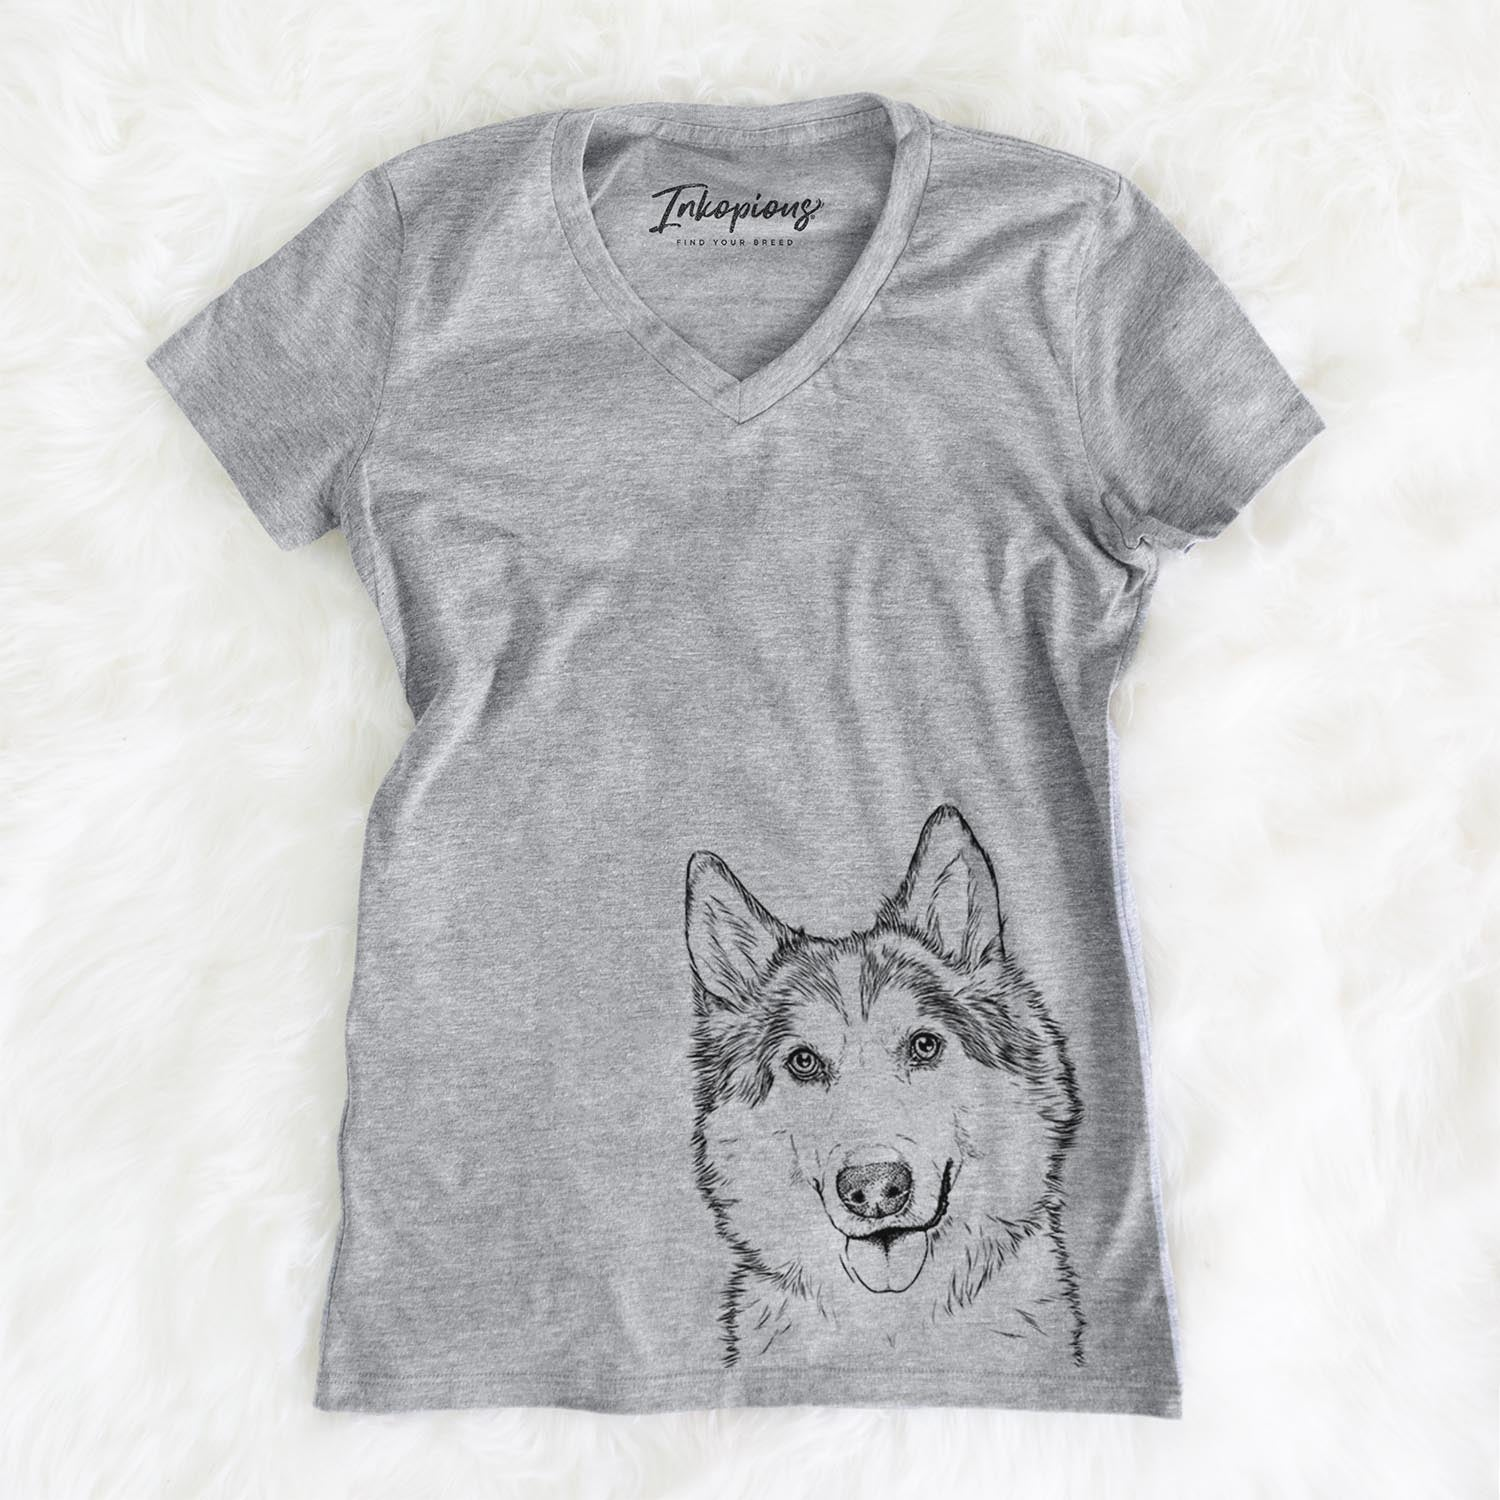 Roshi the Mixed Breed - Women's Modern Fit V-neck Shirt